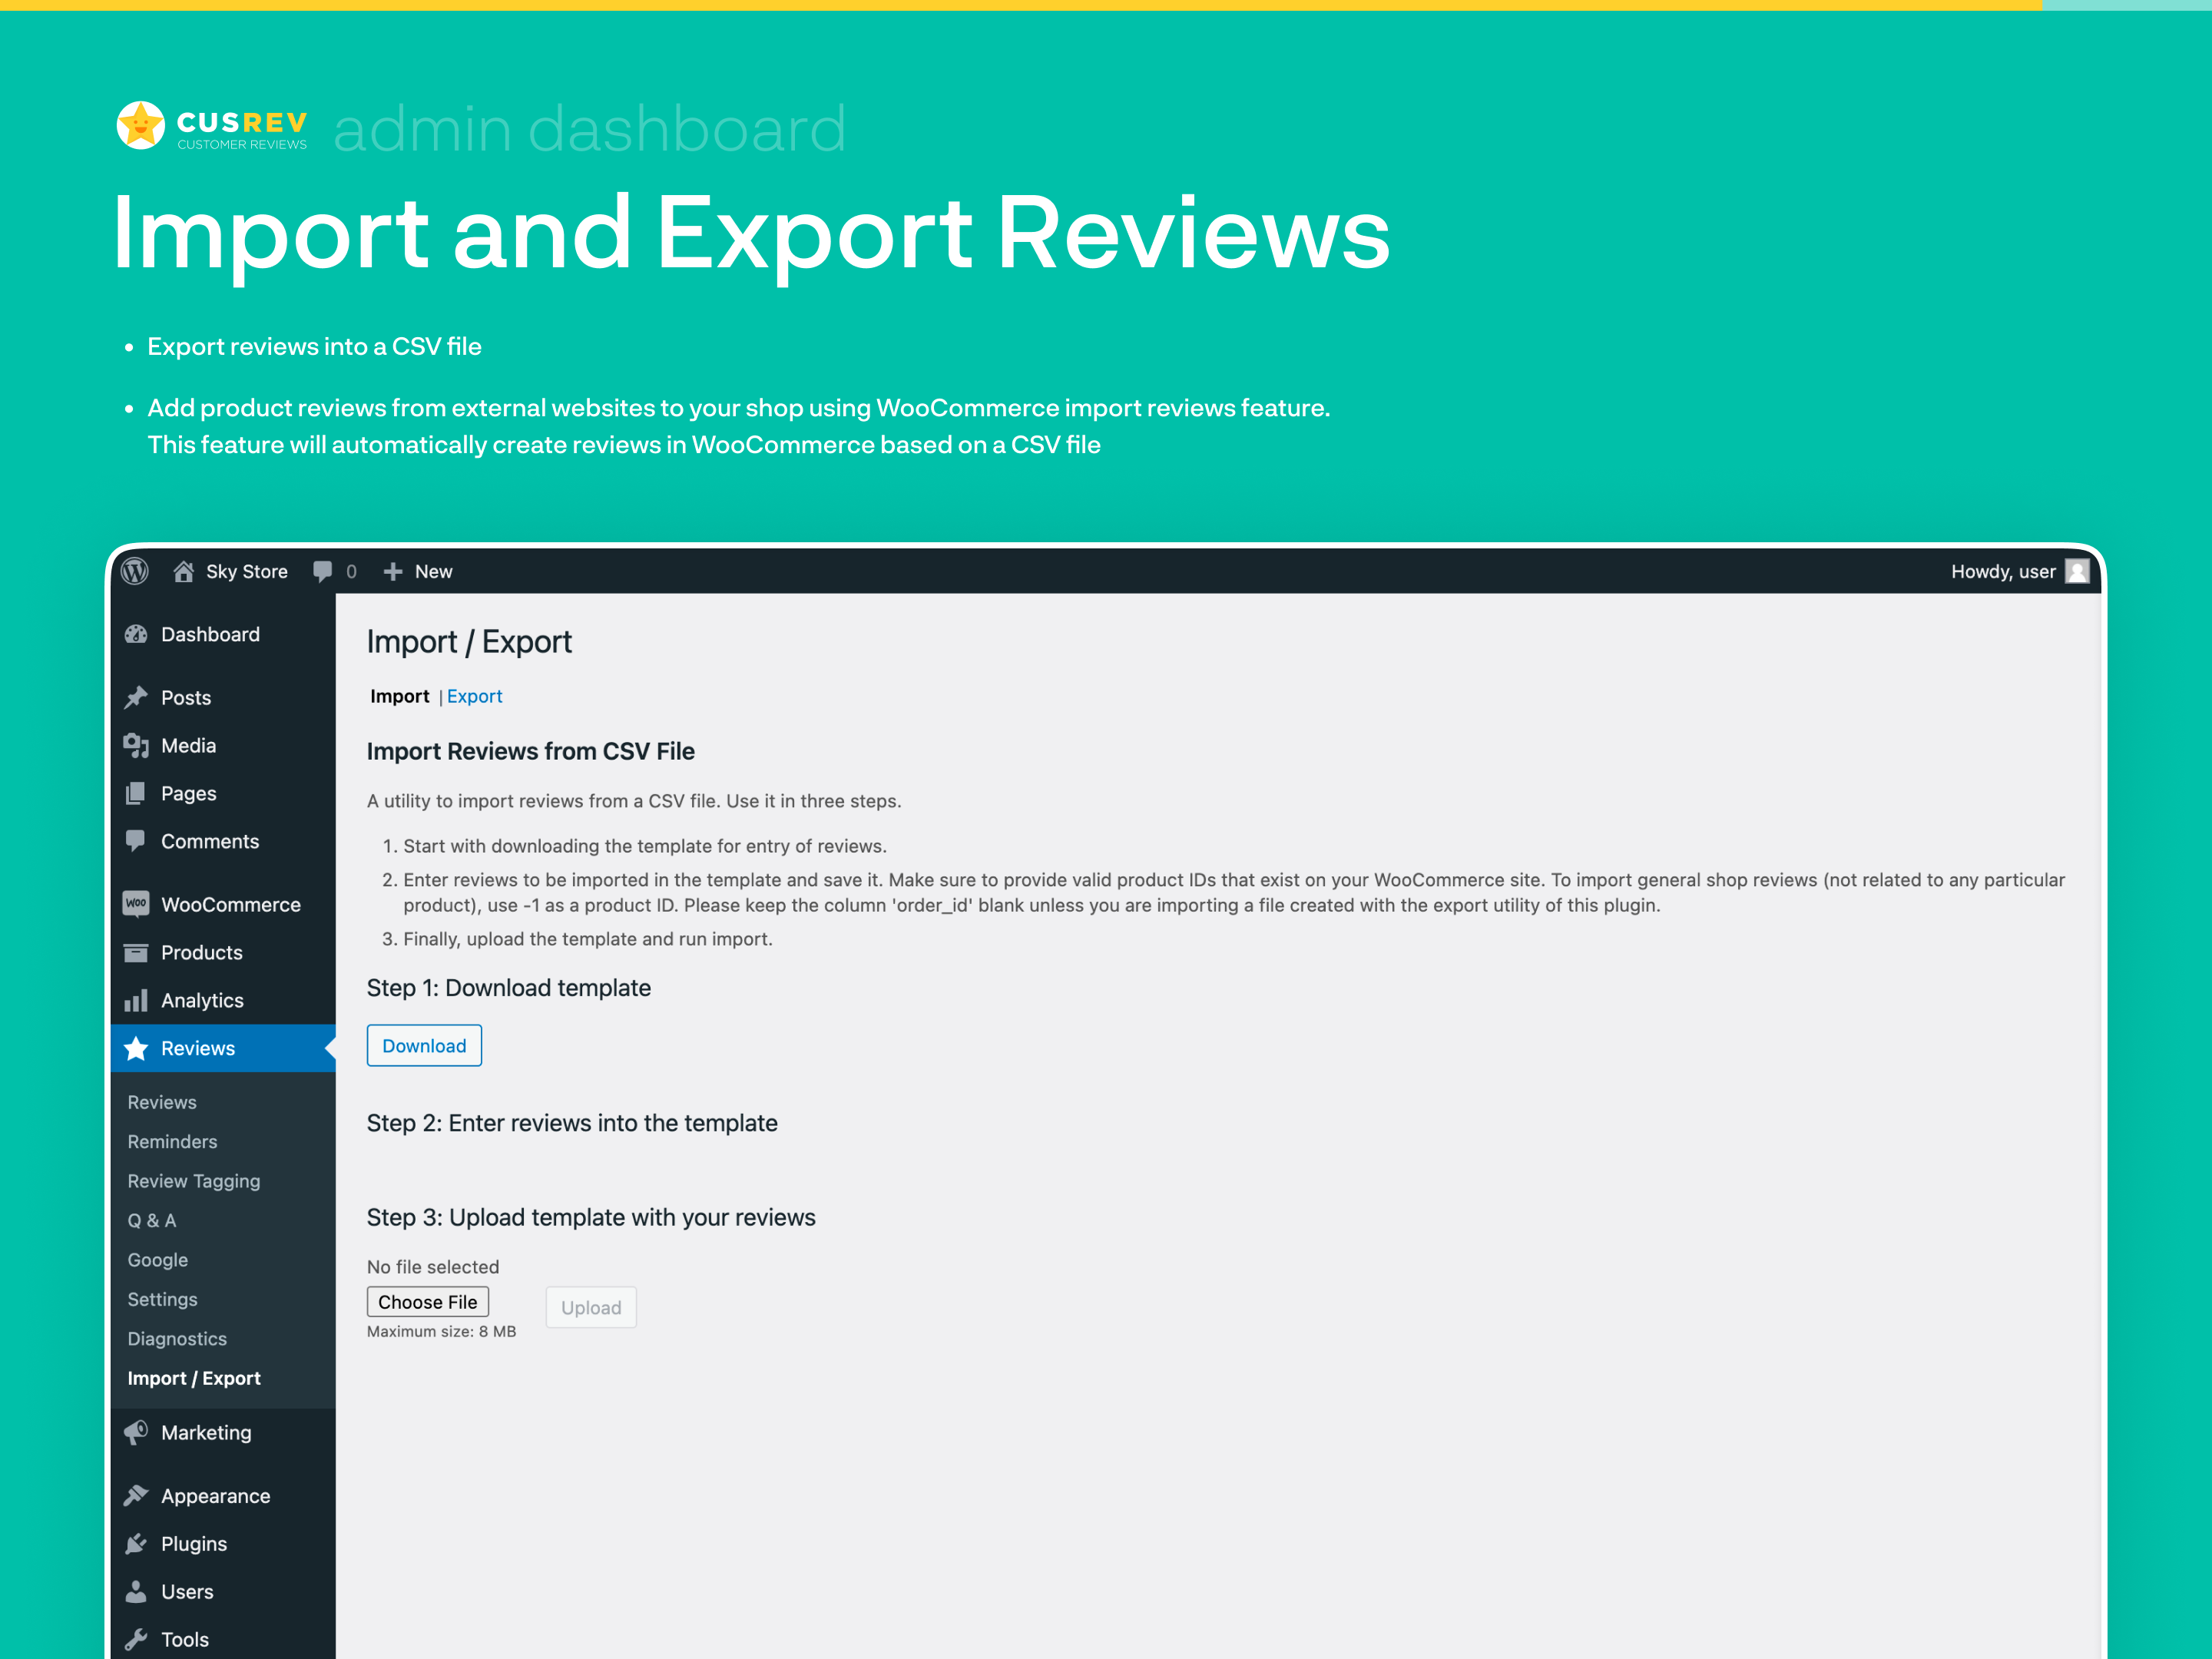 Import and Export Reviews